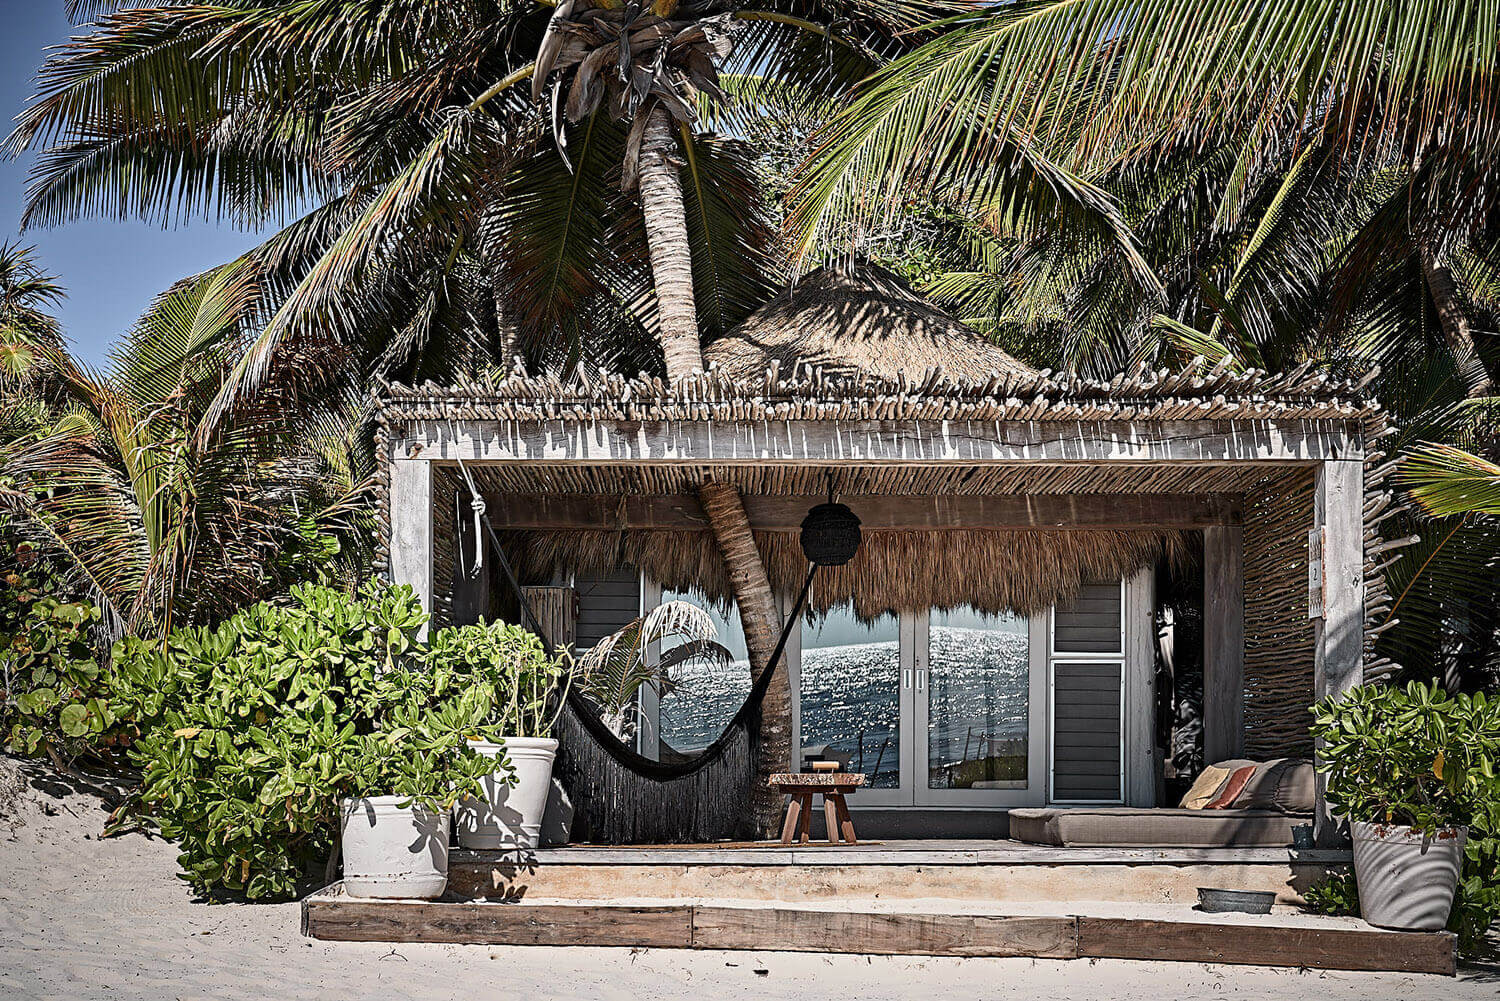 Hotel boutique tulum